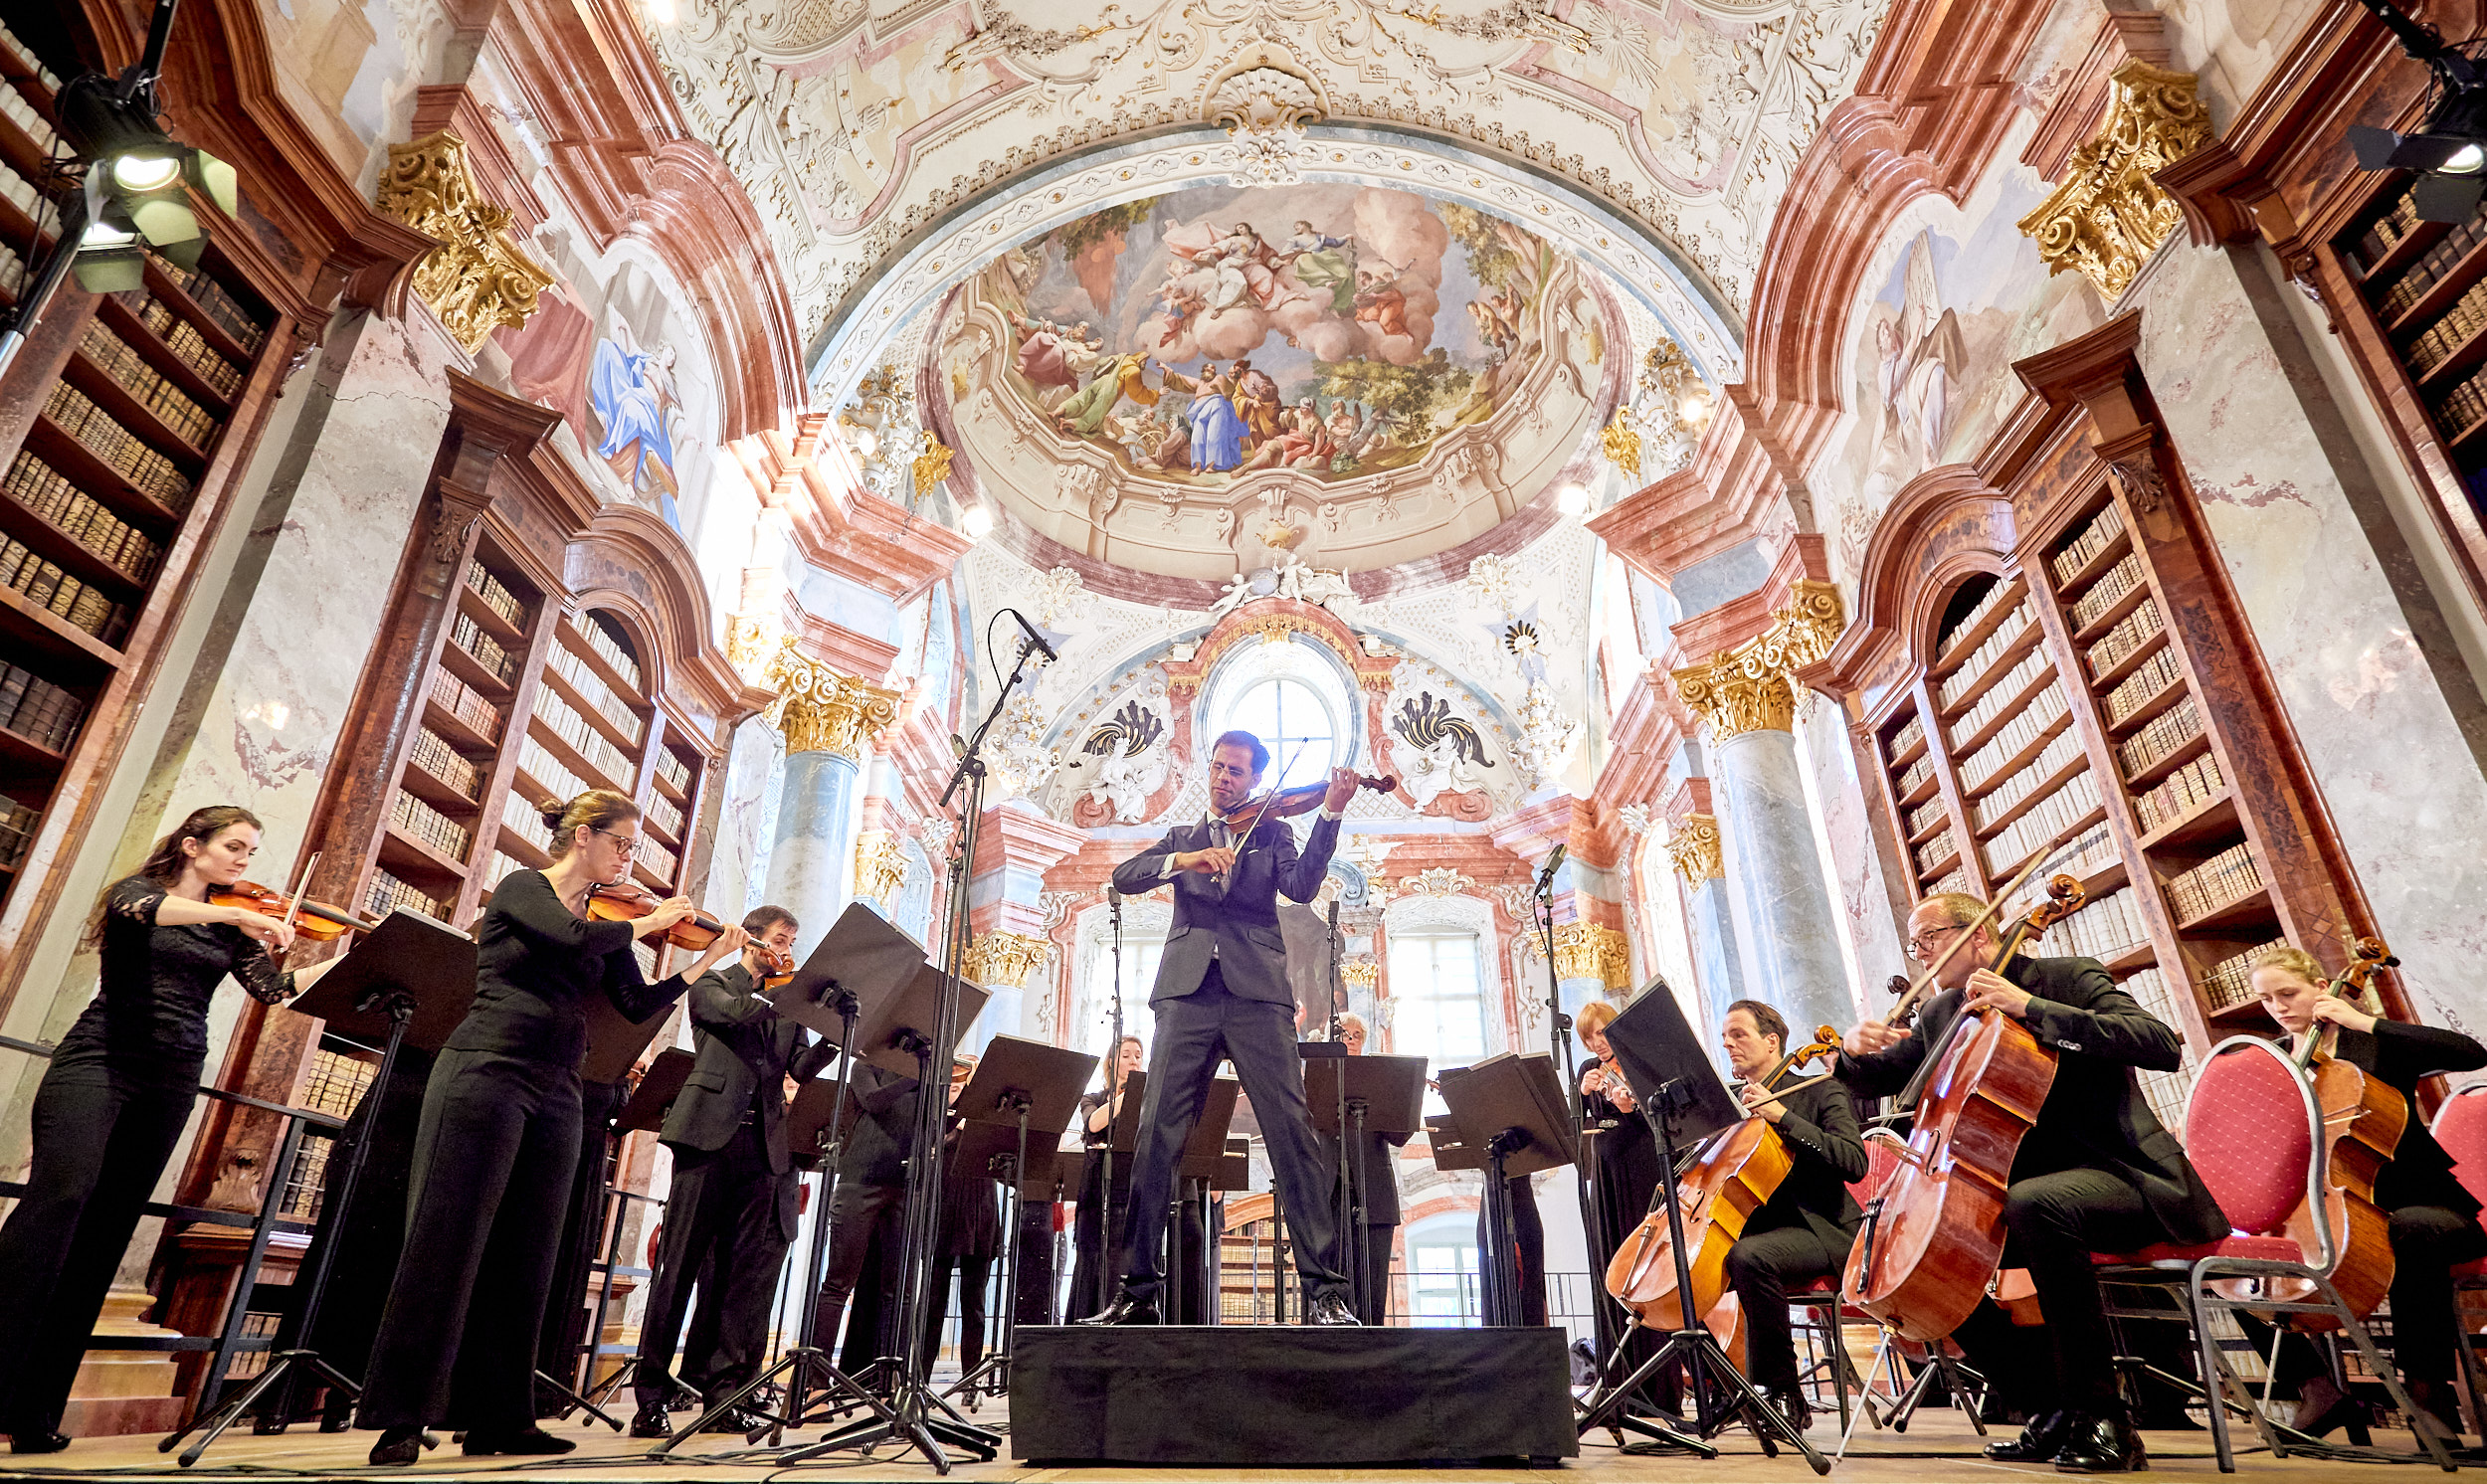 Konzert, Allegro Vivo Festival, Stift Altenburg